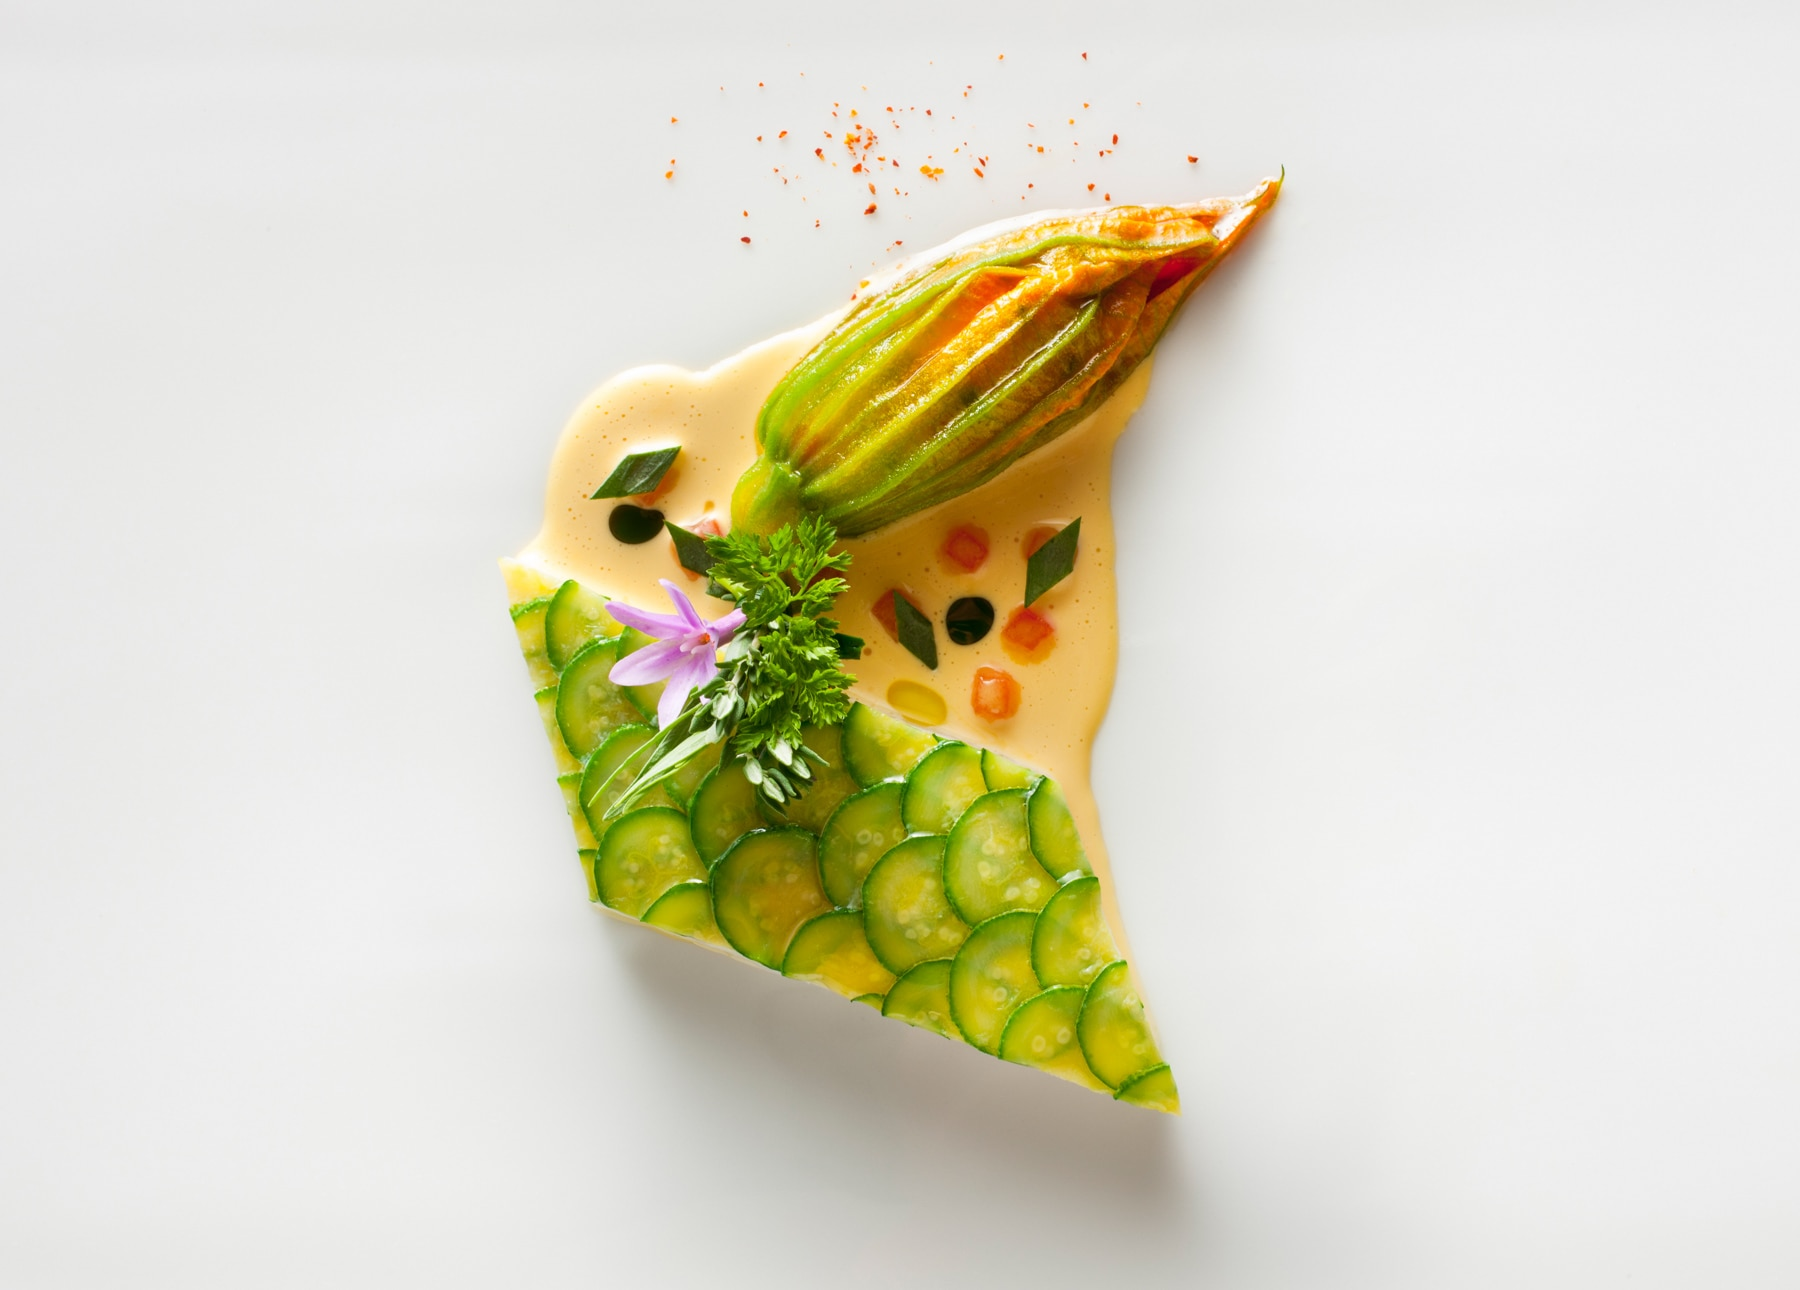 Multicolored food item (Francesco Tobelli)